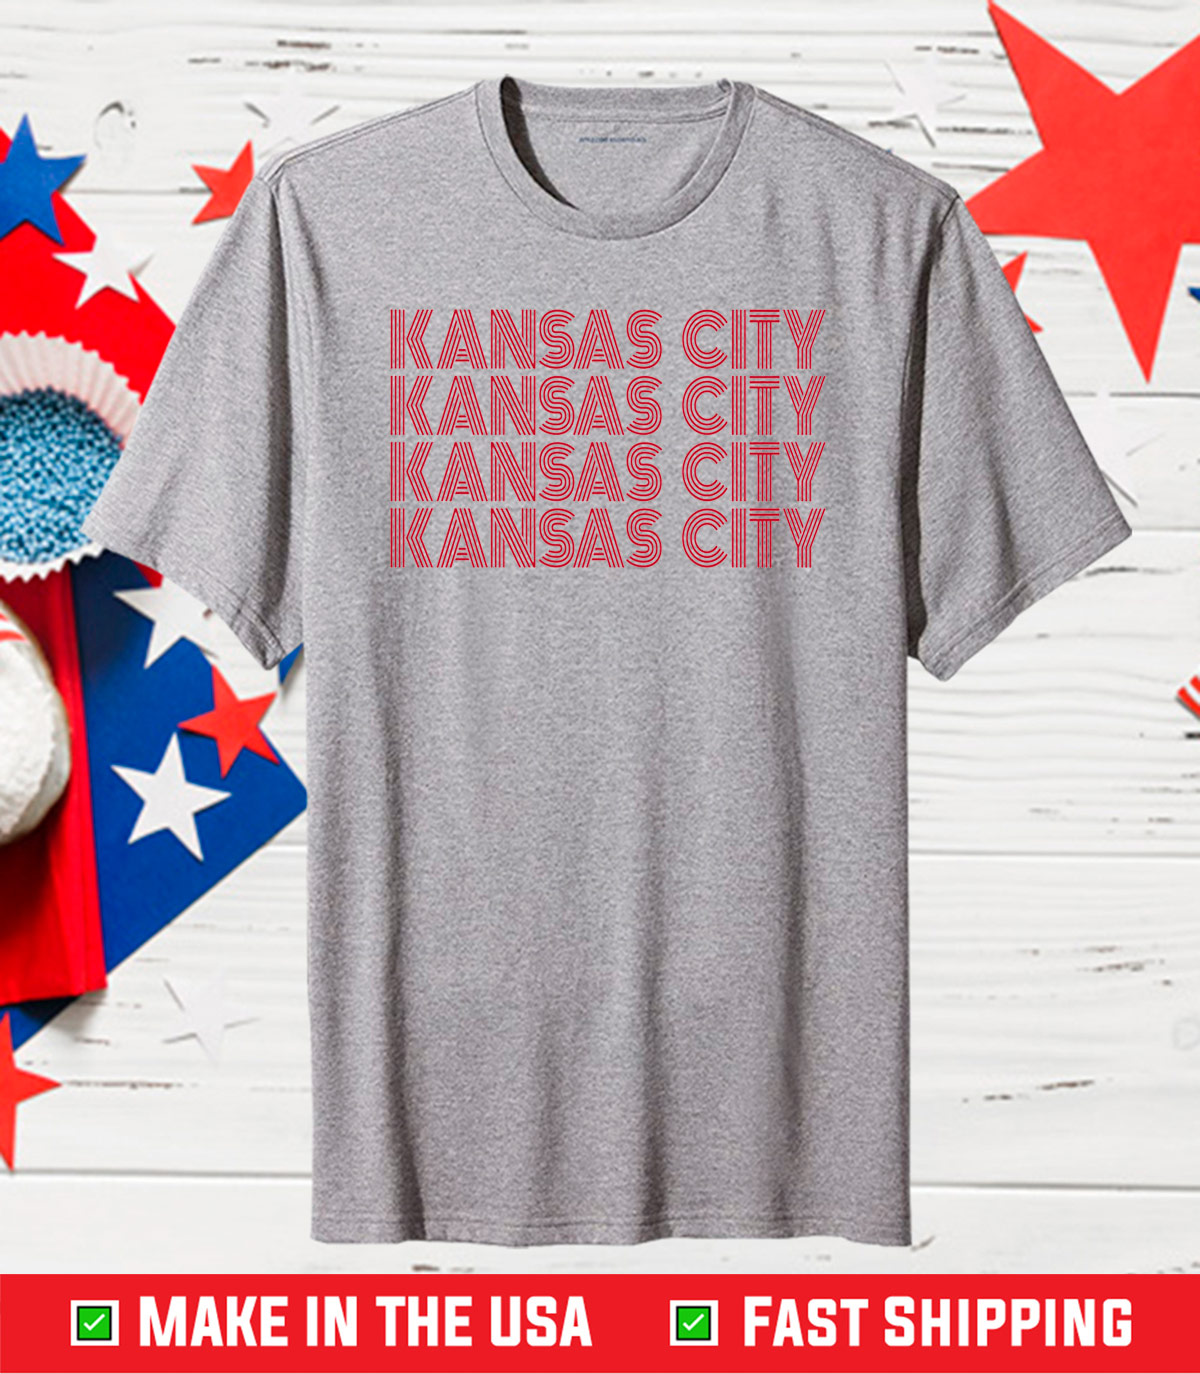 Kansas City Chiefs Fan,Kansas City Chiefs Super Bowl Champs Gift T-Shirt